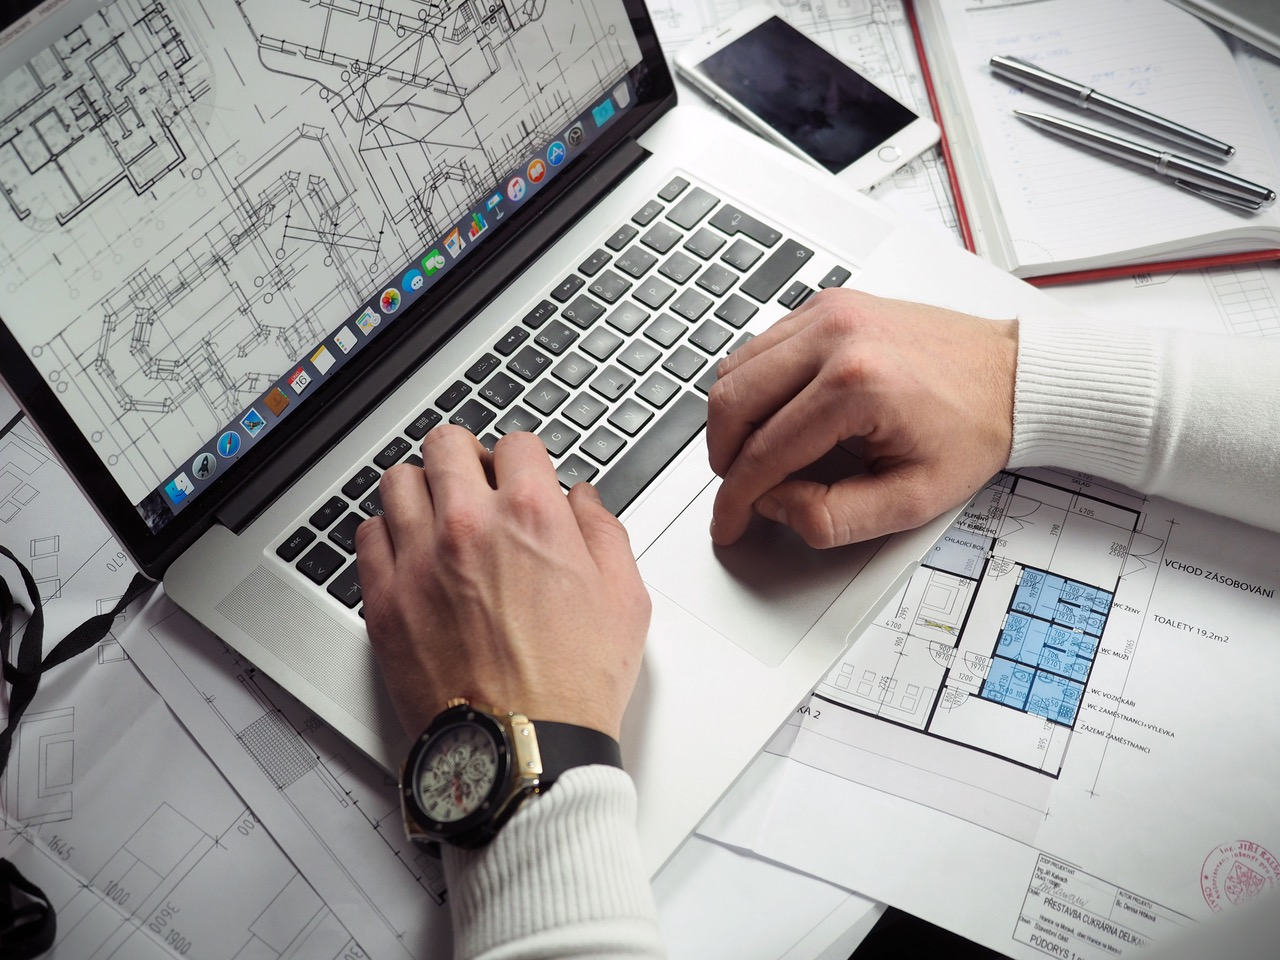 Senior Electrical Design Engineer Mississauga Area Fusion Career Services Blog